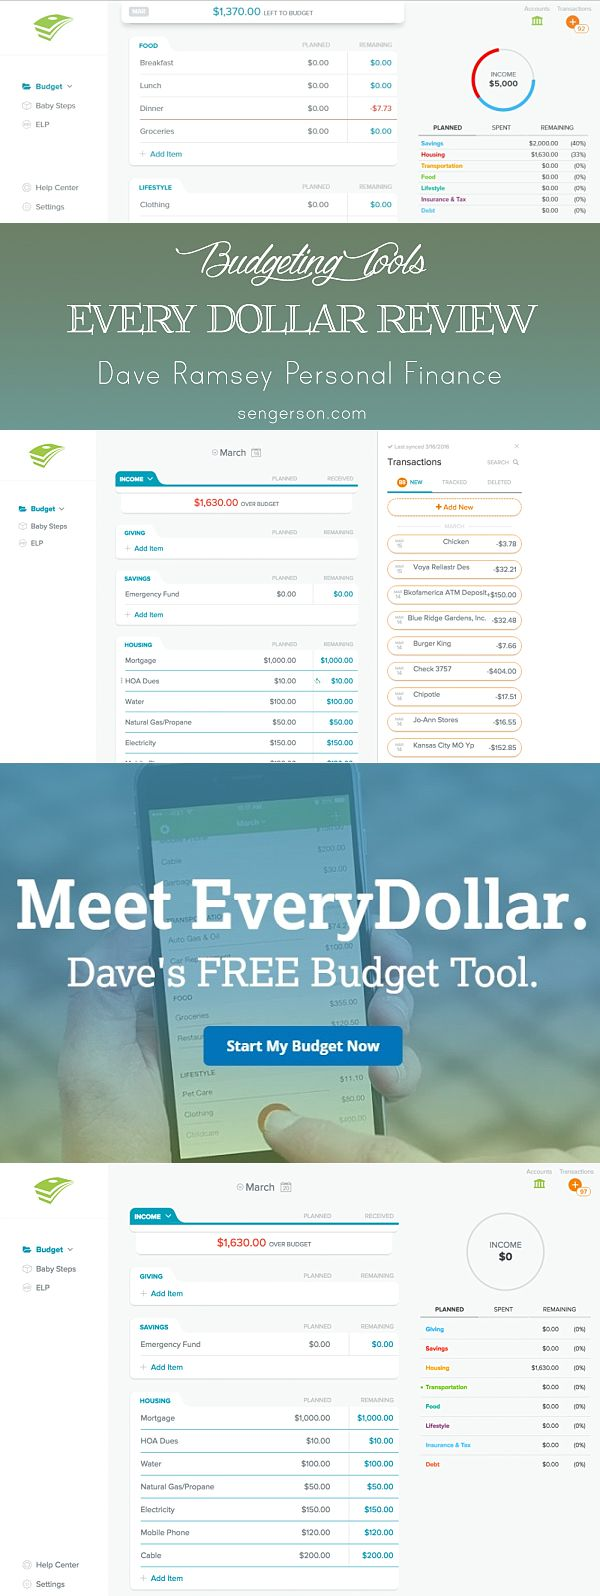 Every Dollar budgeting tool review. Great personal finance budgeting tool that is accessible online (from any computer) and device. Allows you to track your finances on the go and make sure you stay on track for big kid goals :)